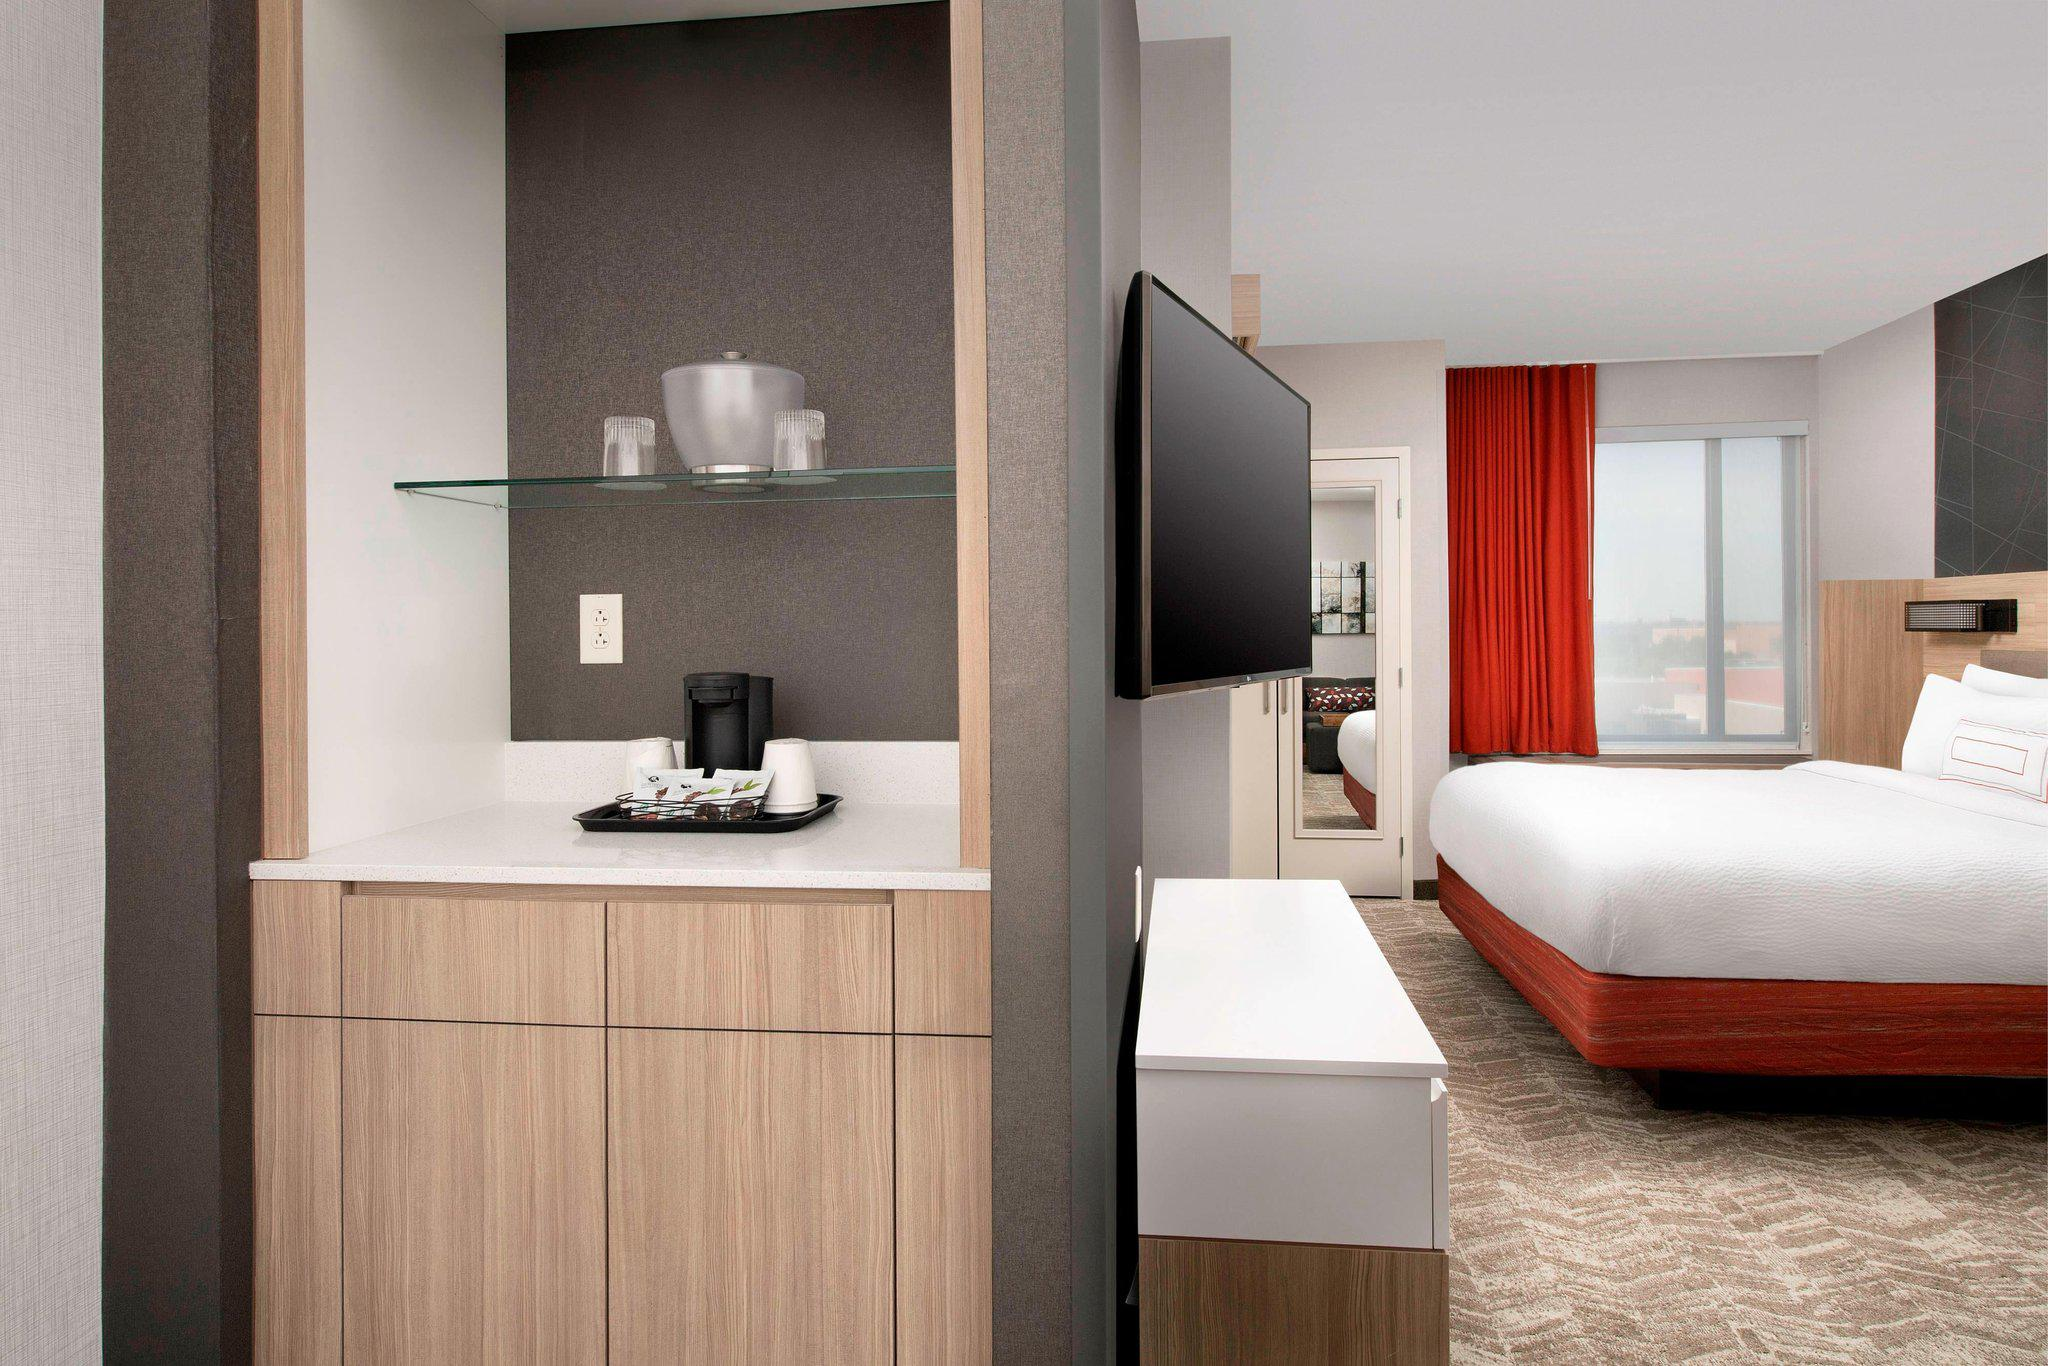 SpringHill Suites by Marriott Albuquerque North/Journal Center